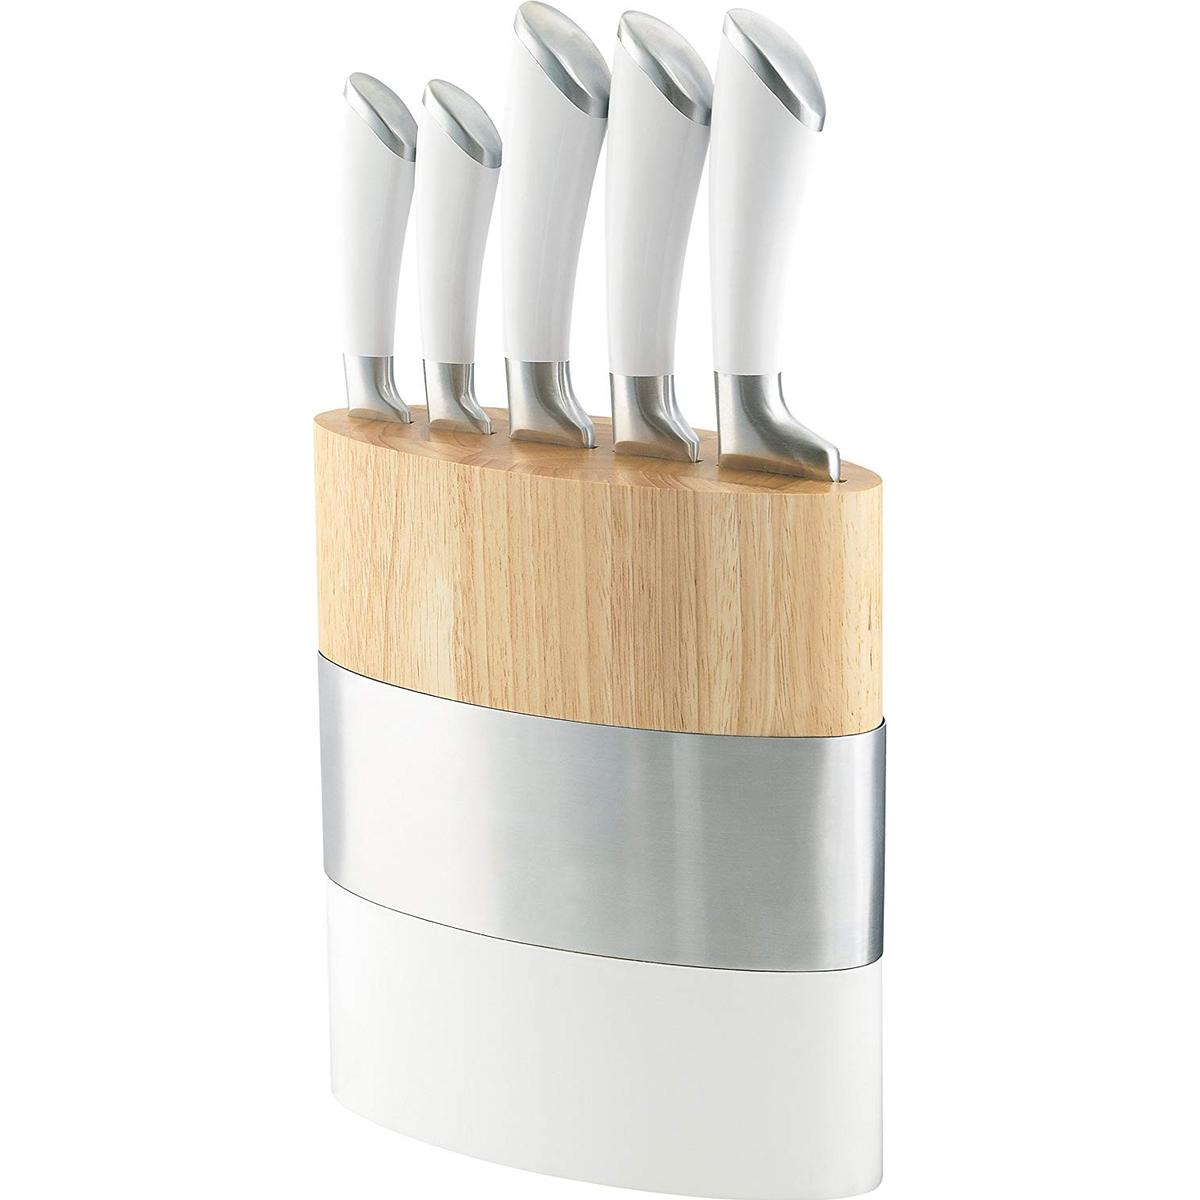 sheffield kitchen knives richardson sheffield kitchen knives 25 products see lowest price now 1977